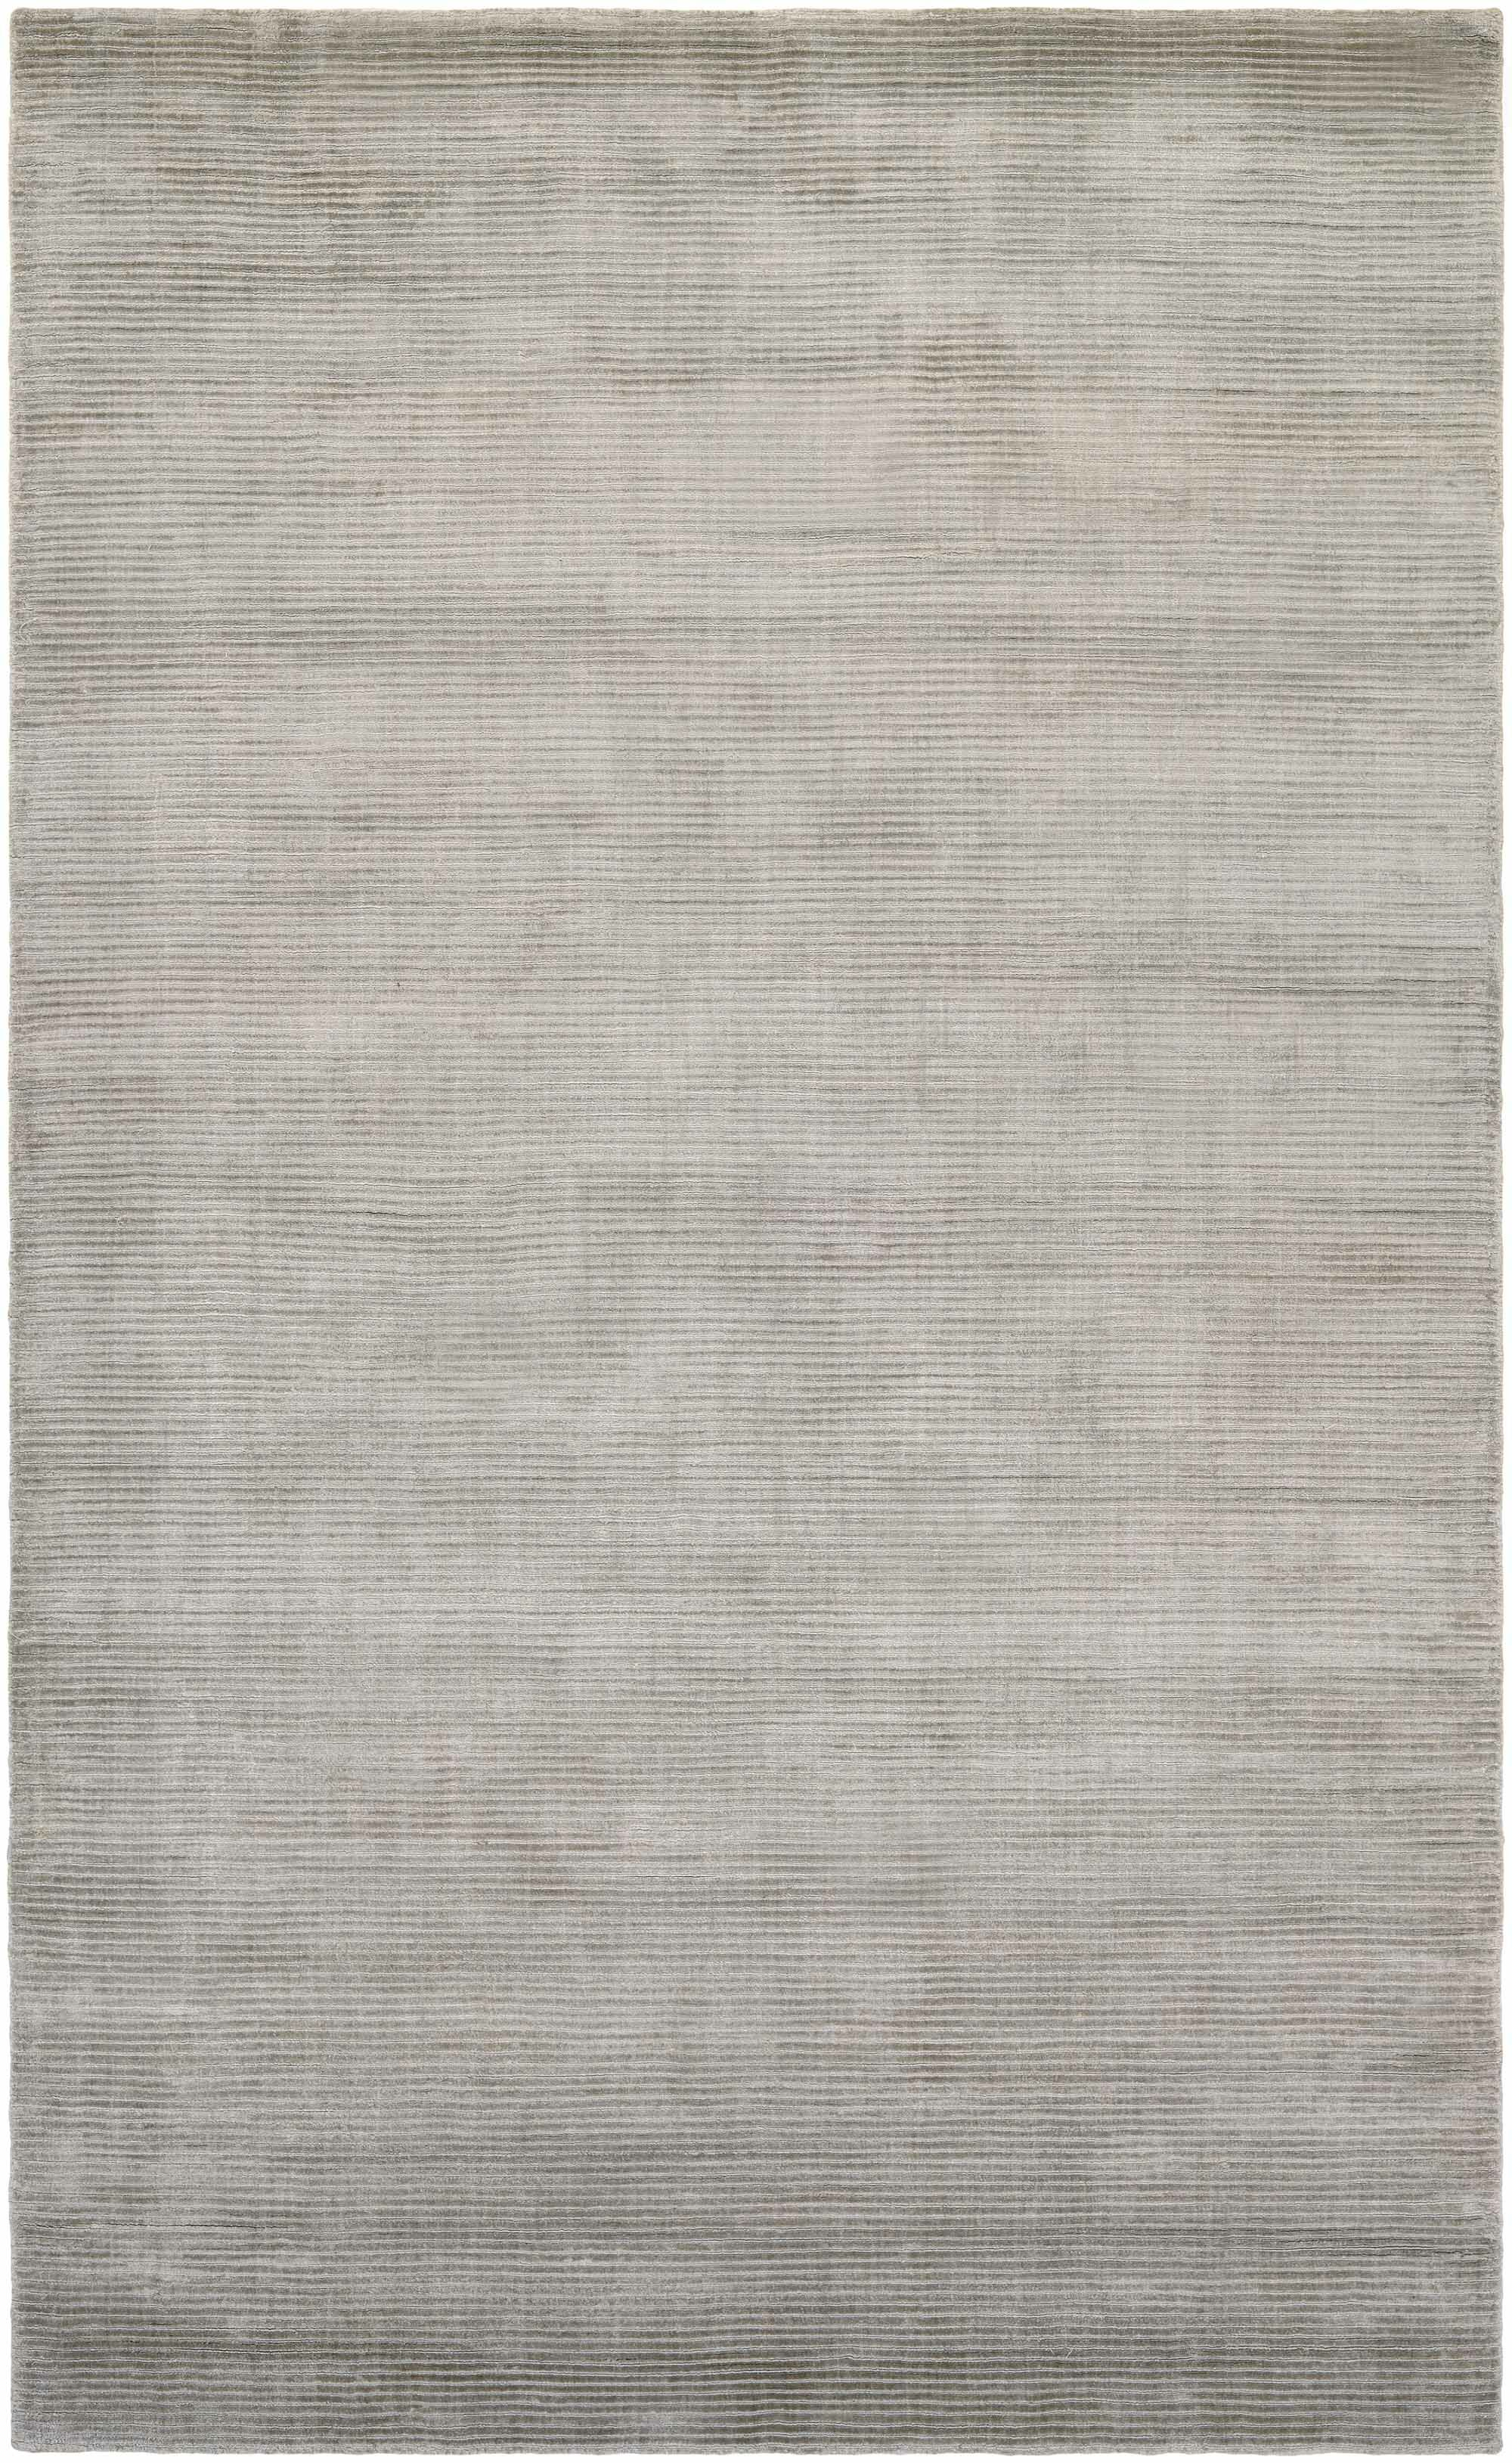 Alyson Hand-Loomed Fawn Area Rug Rug Size: Rectangle 9'6